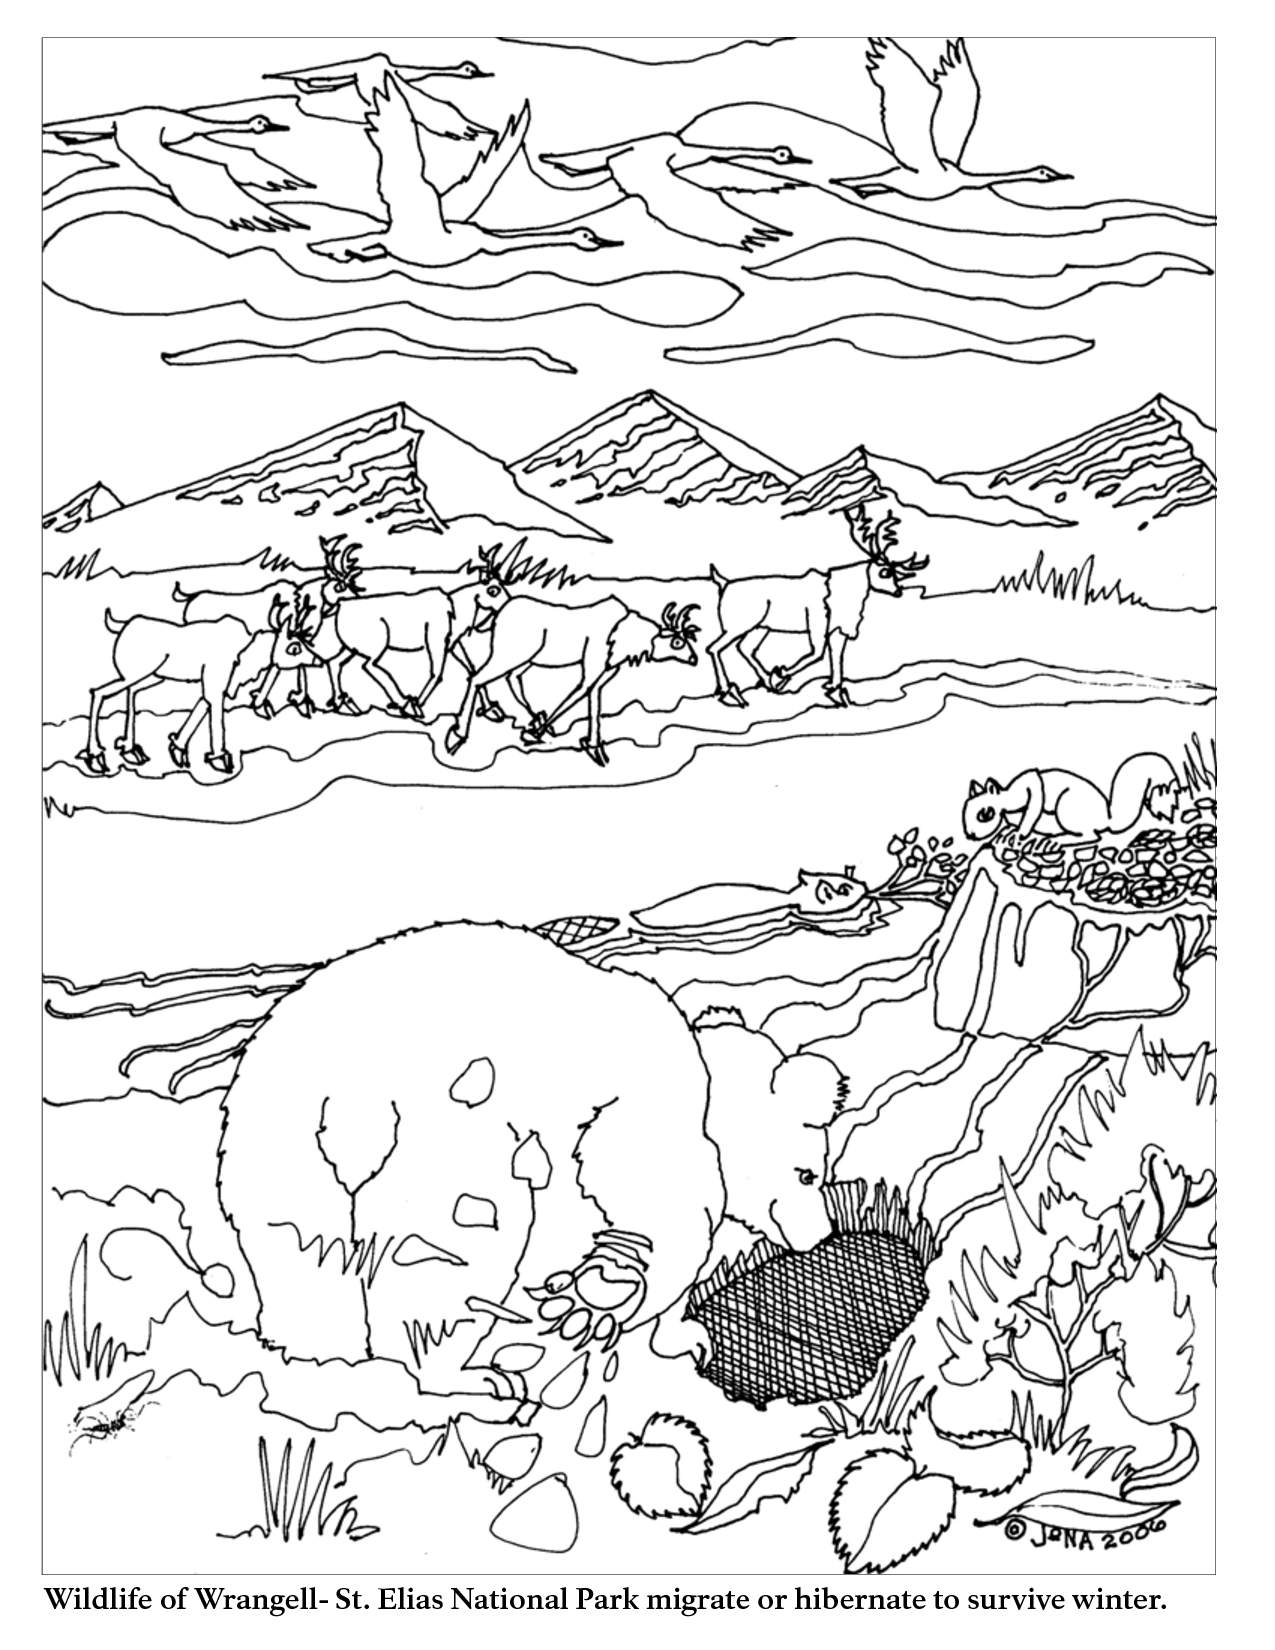 900 Top Migrating Animals Coloring Pages  Images